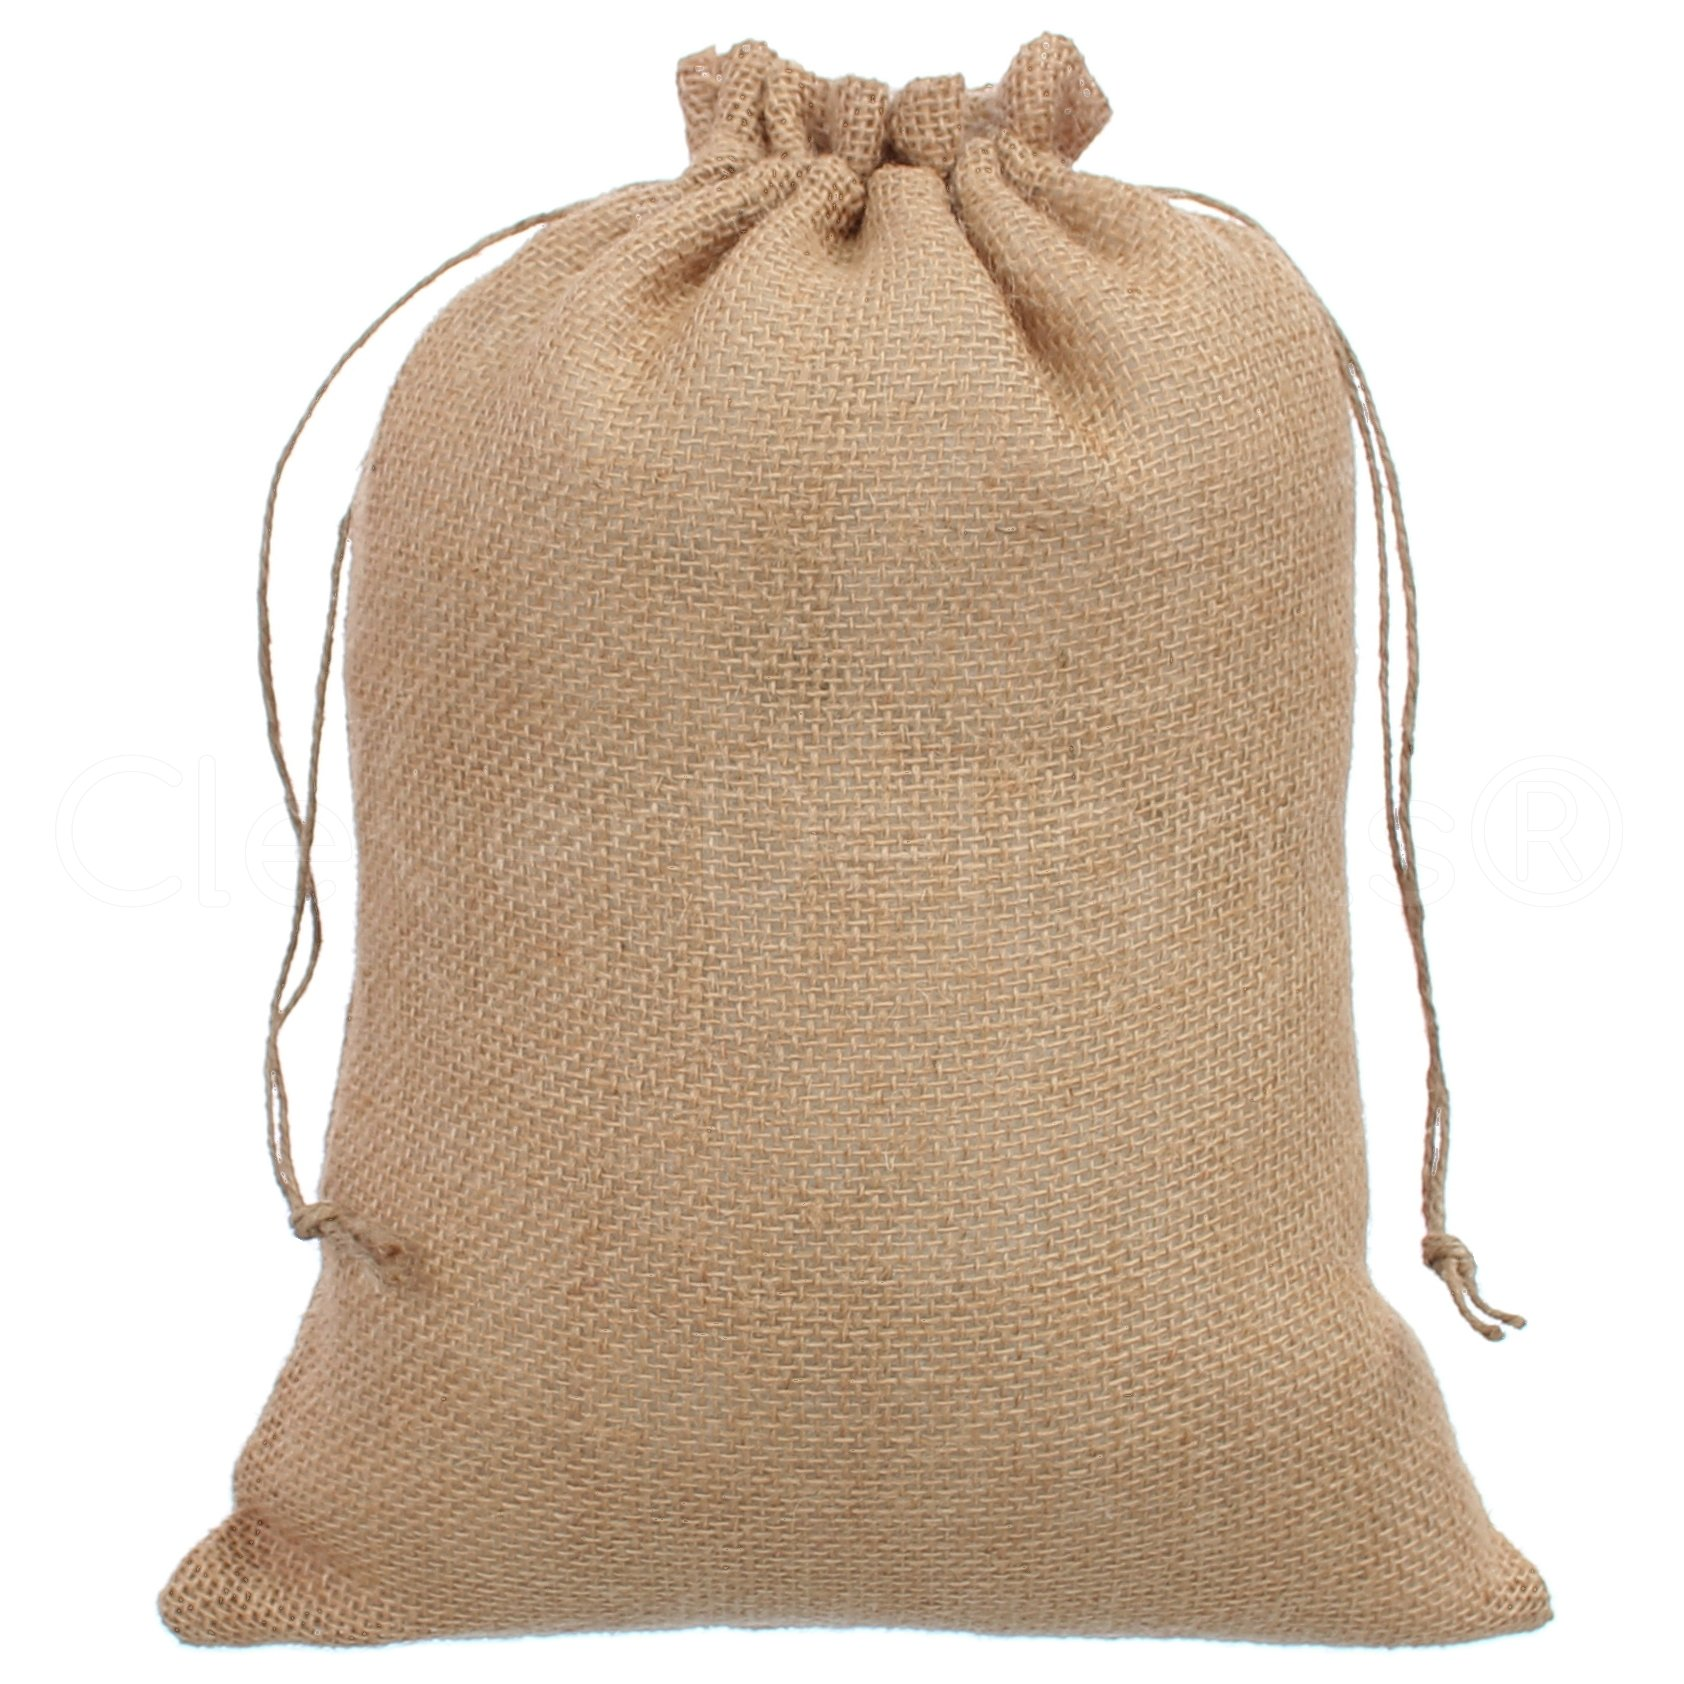 CleverDelights 10'' x 14'' Burlap Bags with Natural Jute Drawstring - 50 Pack - Large Burlap Pouch Sack Favor Bag for Showers Weddings Parties and Receptions - 10x14 inch